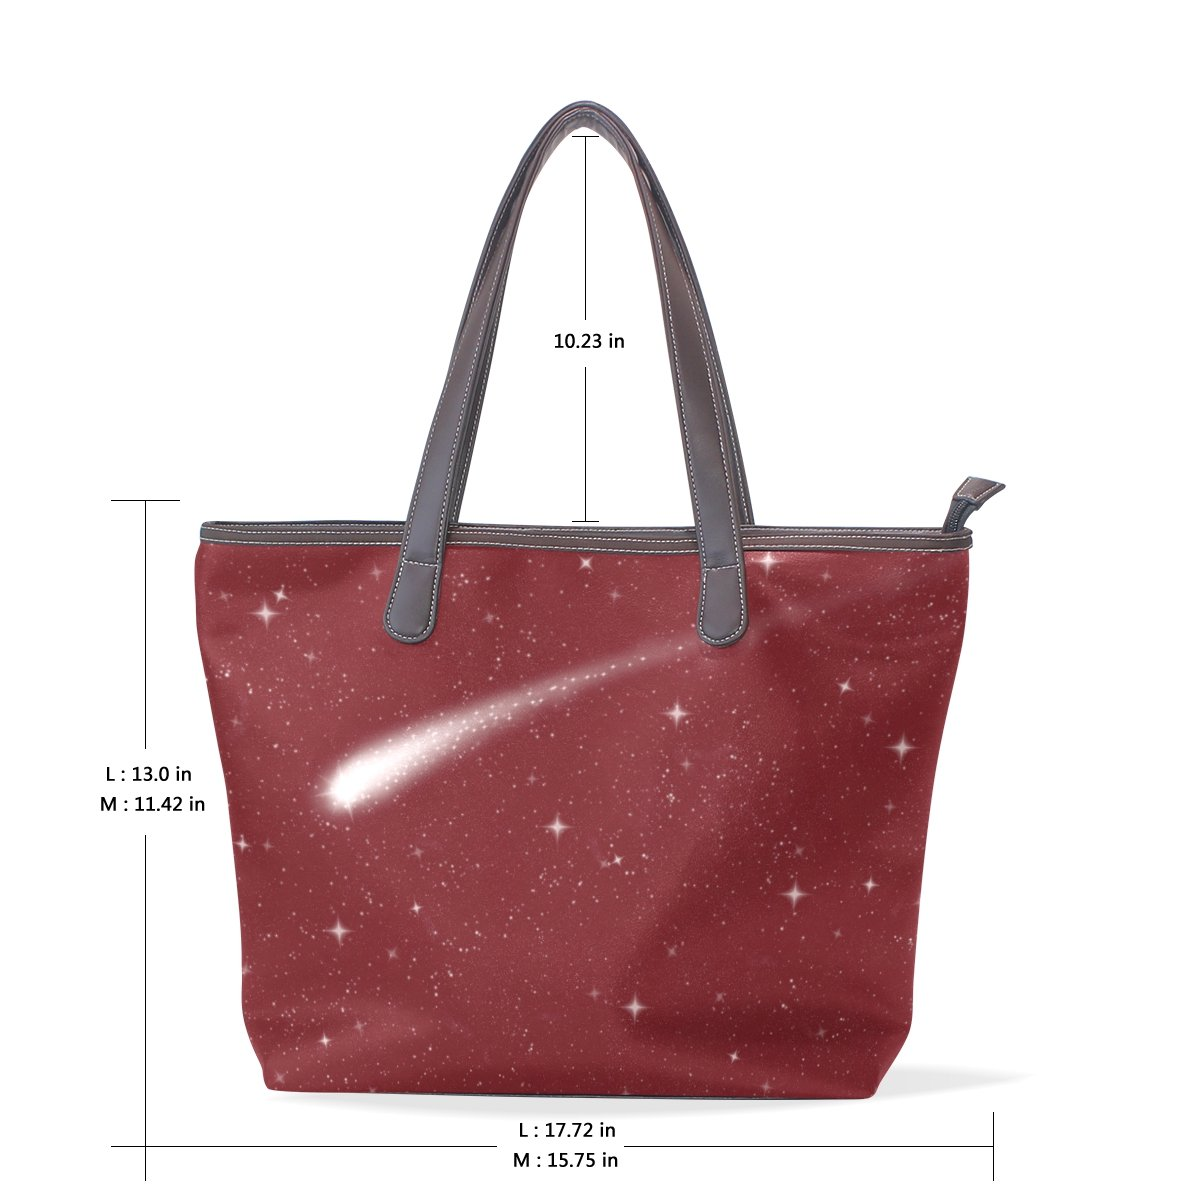 Sunlome Night Sky With Comet Pattern Handbags For Women Girls PU Leather Shoulder Tote Bag